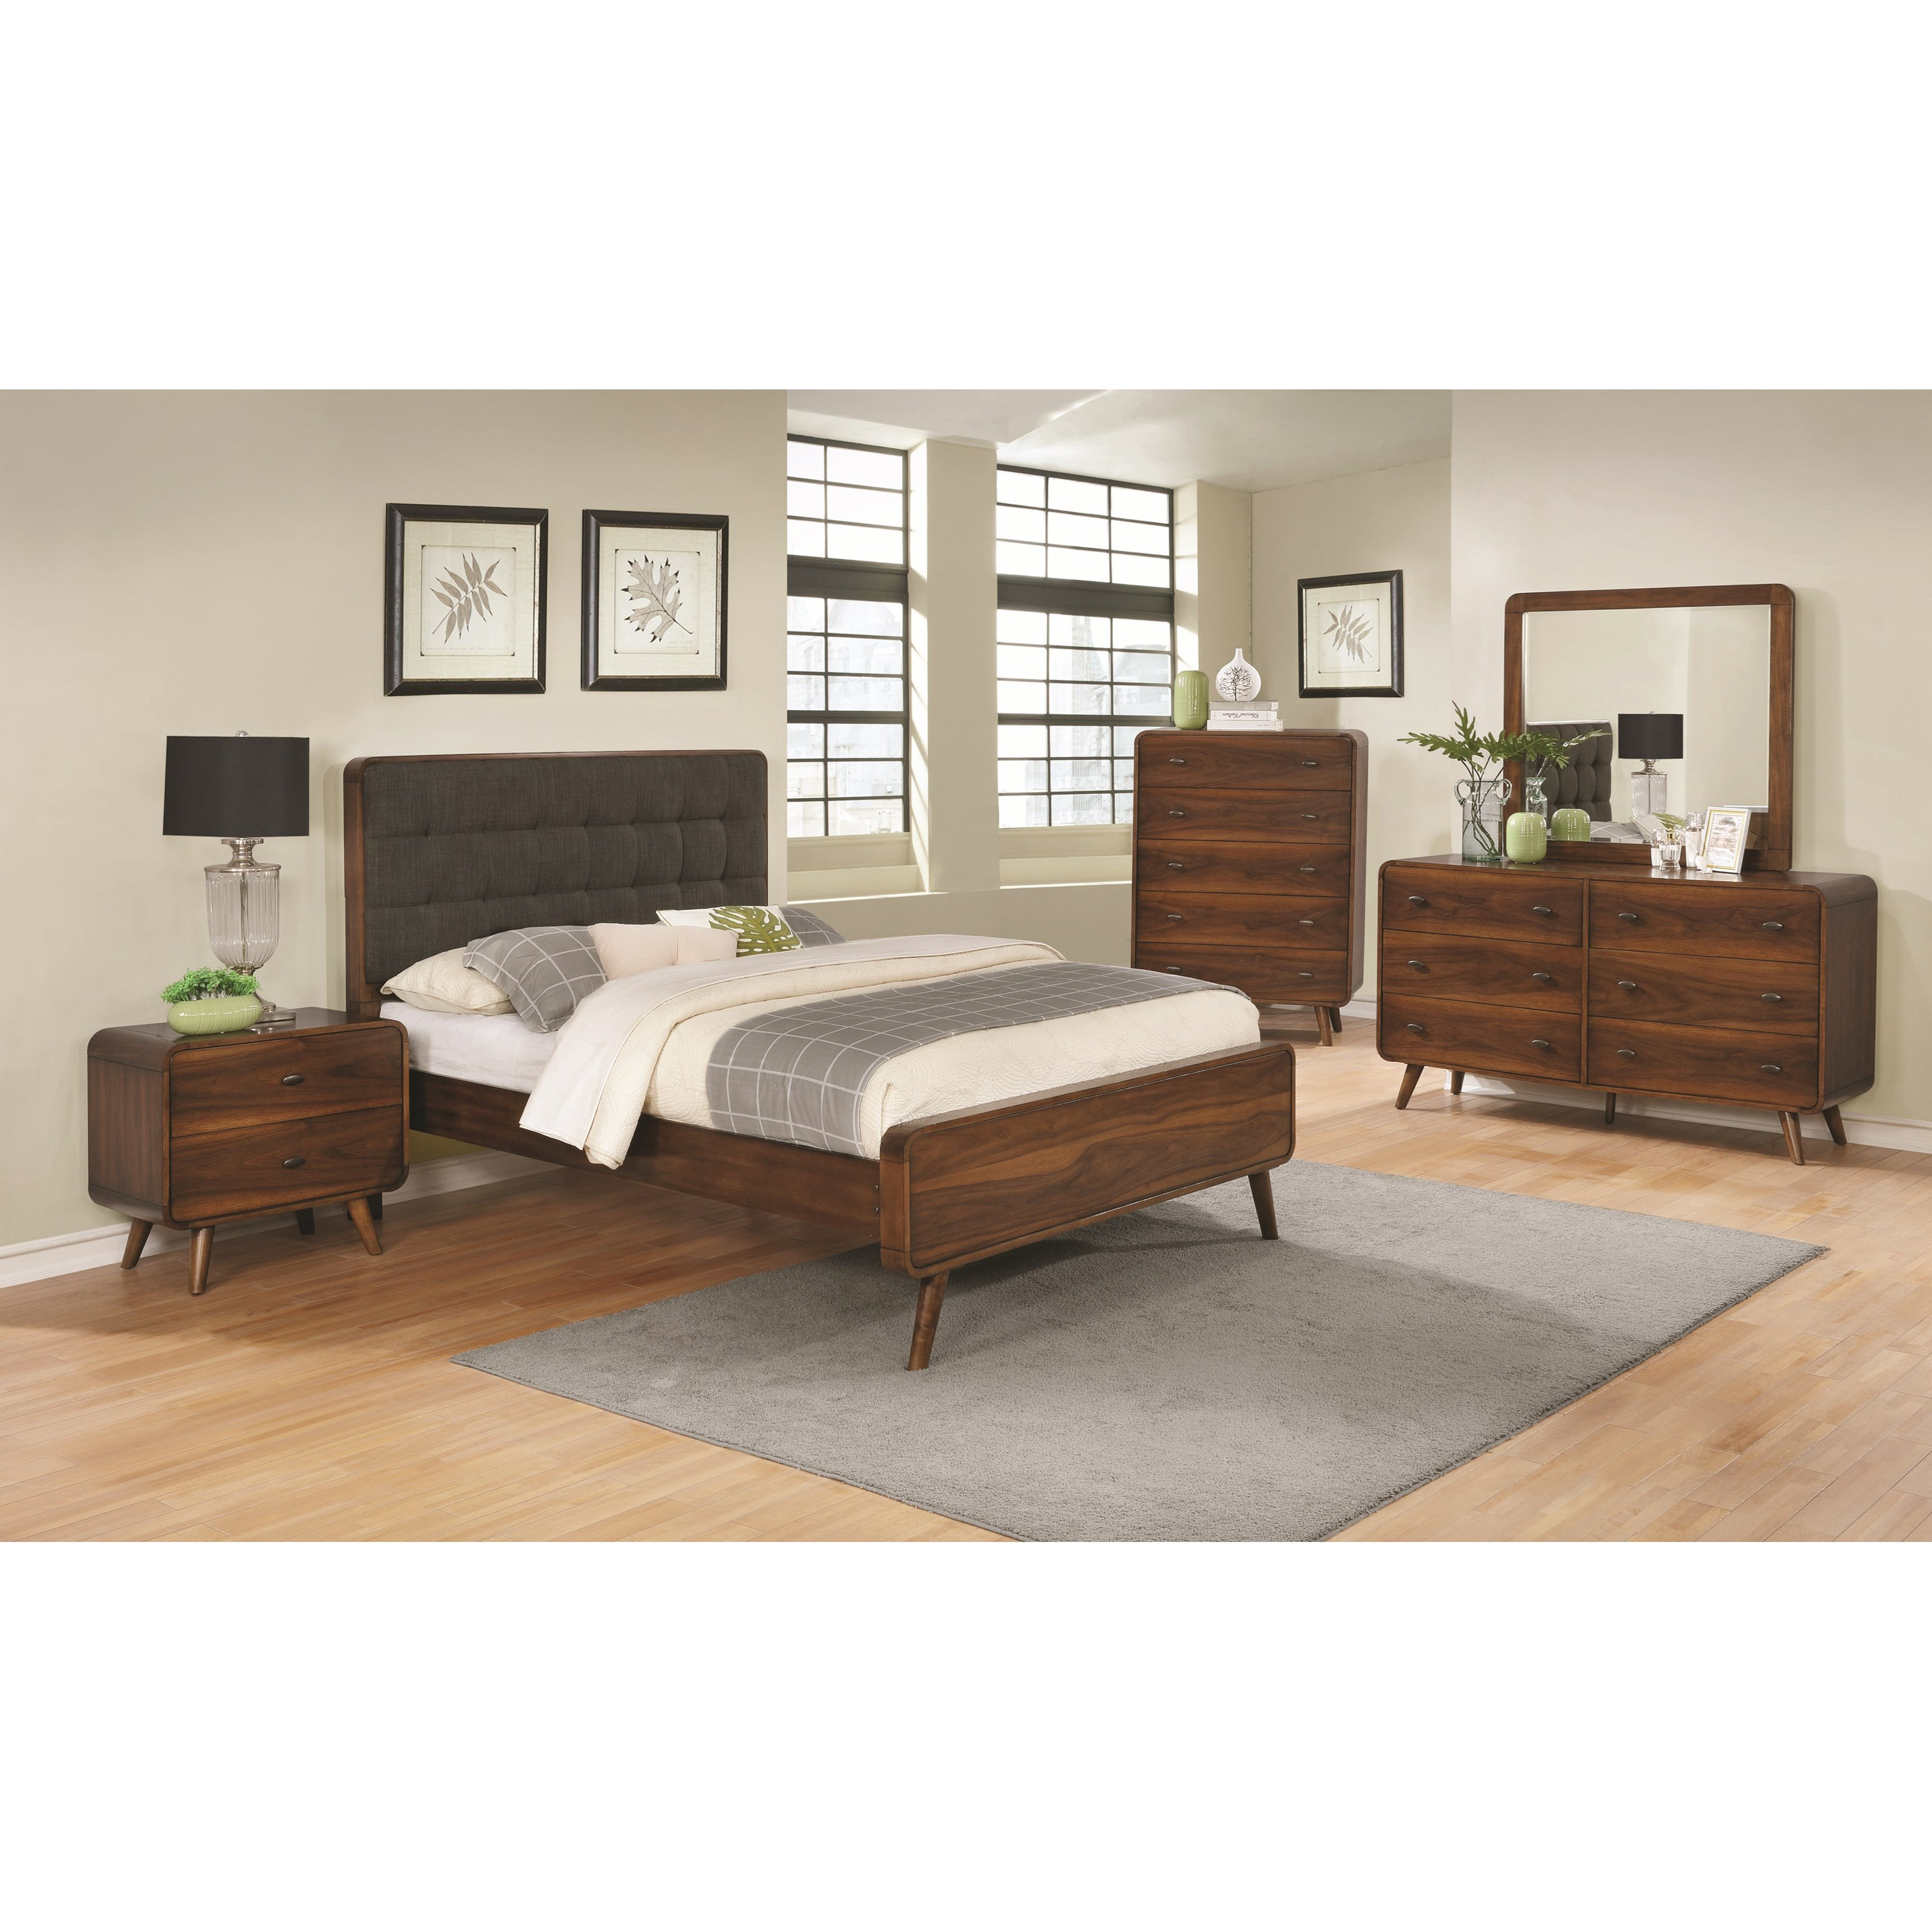 Robyn Queen Bedroom Group - NO CHEST by Coaster at Beck's Furniture